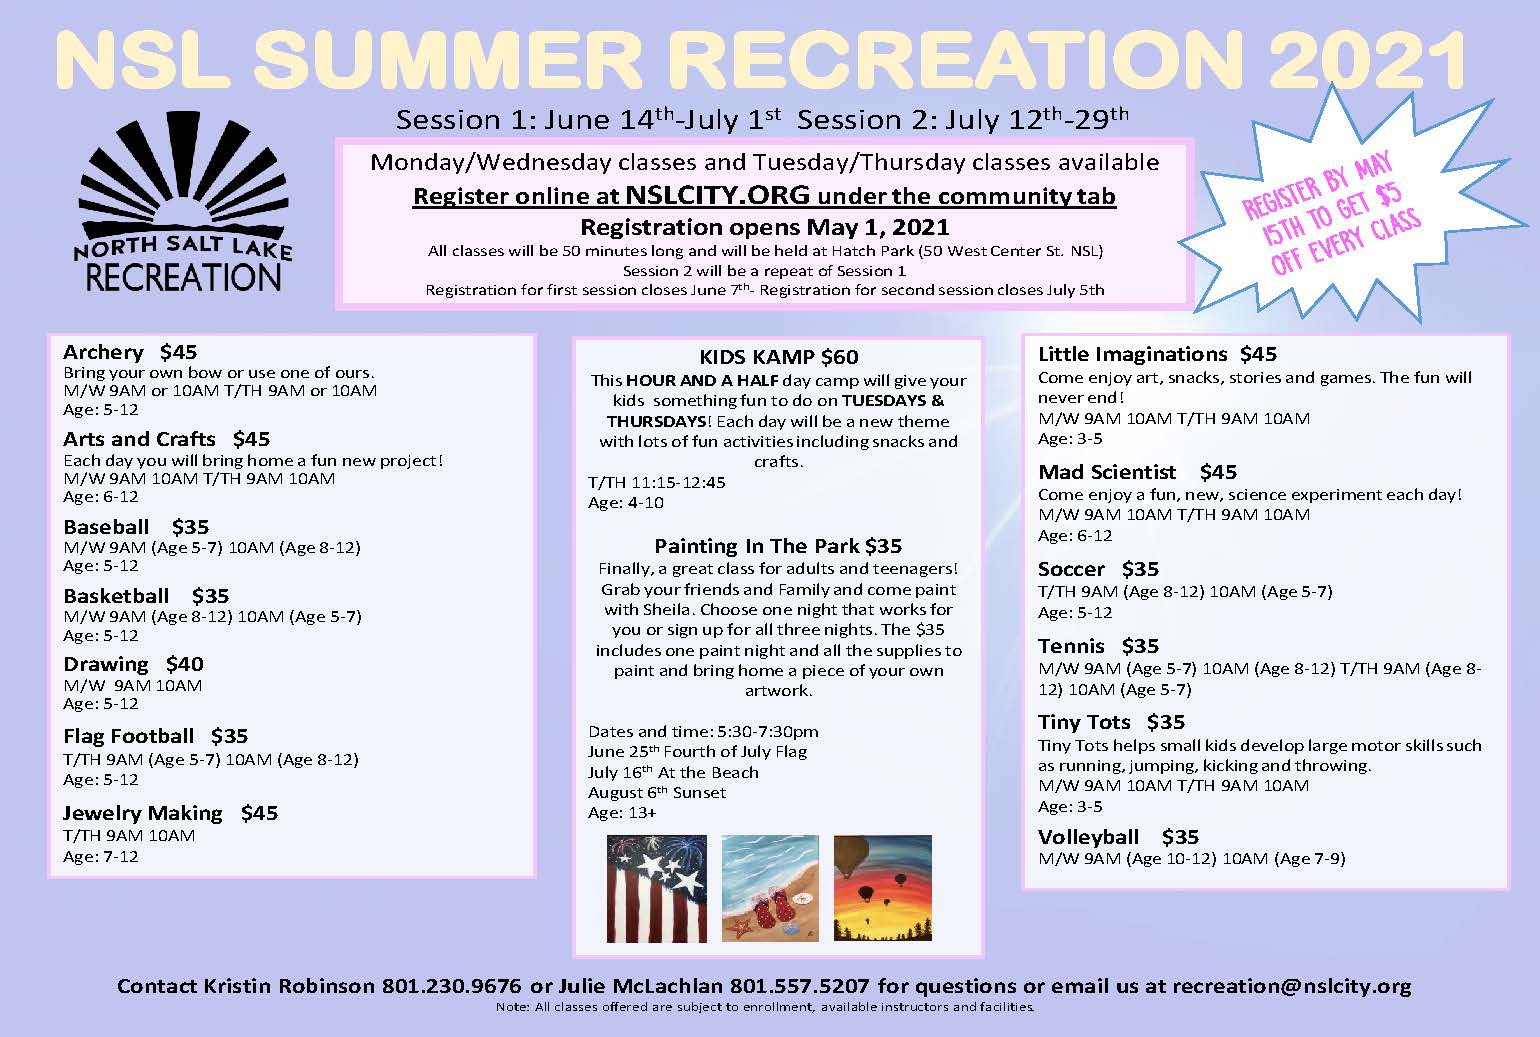 2021 recreation flyer revised 4-19-21